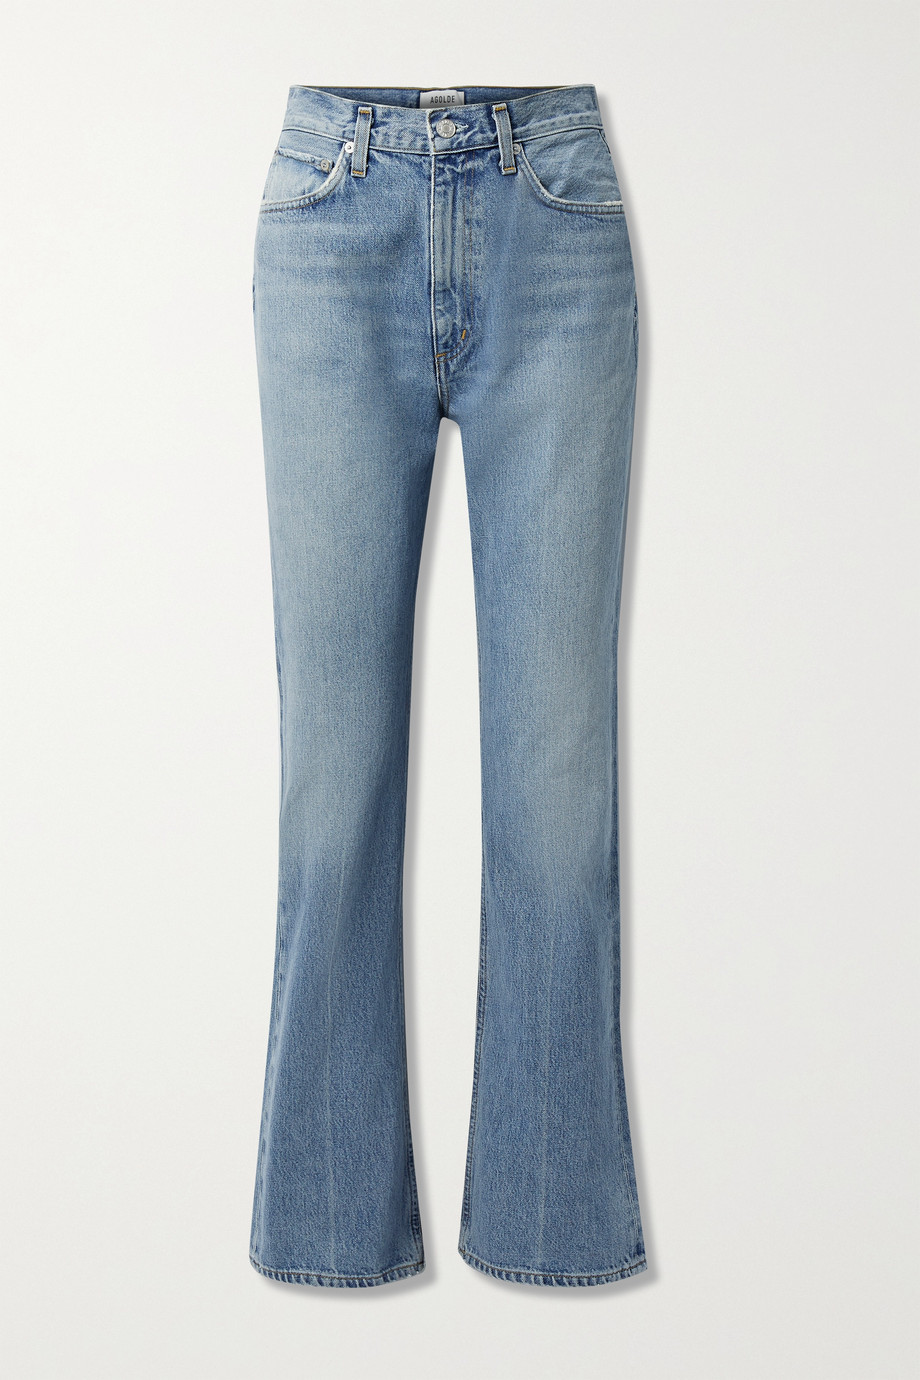 AGOLDE Organic high-rise flared jeans